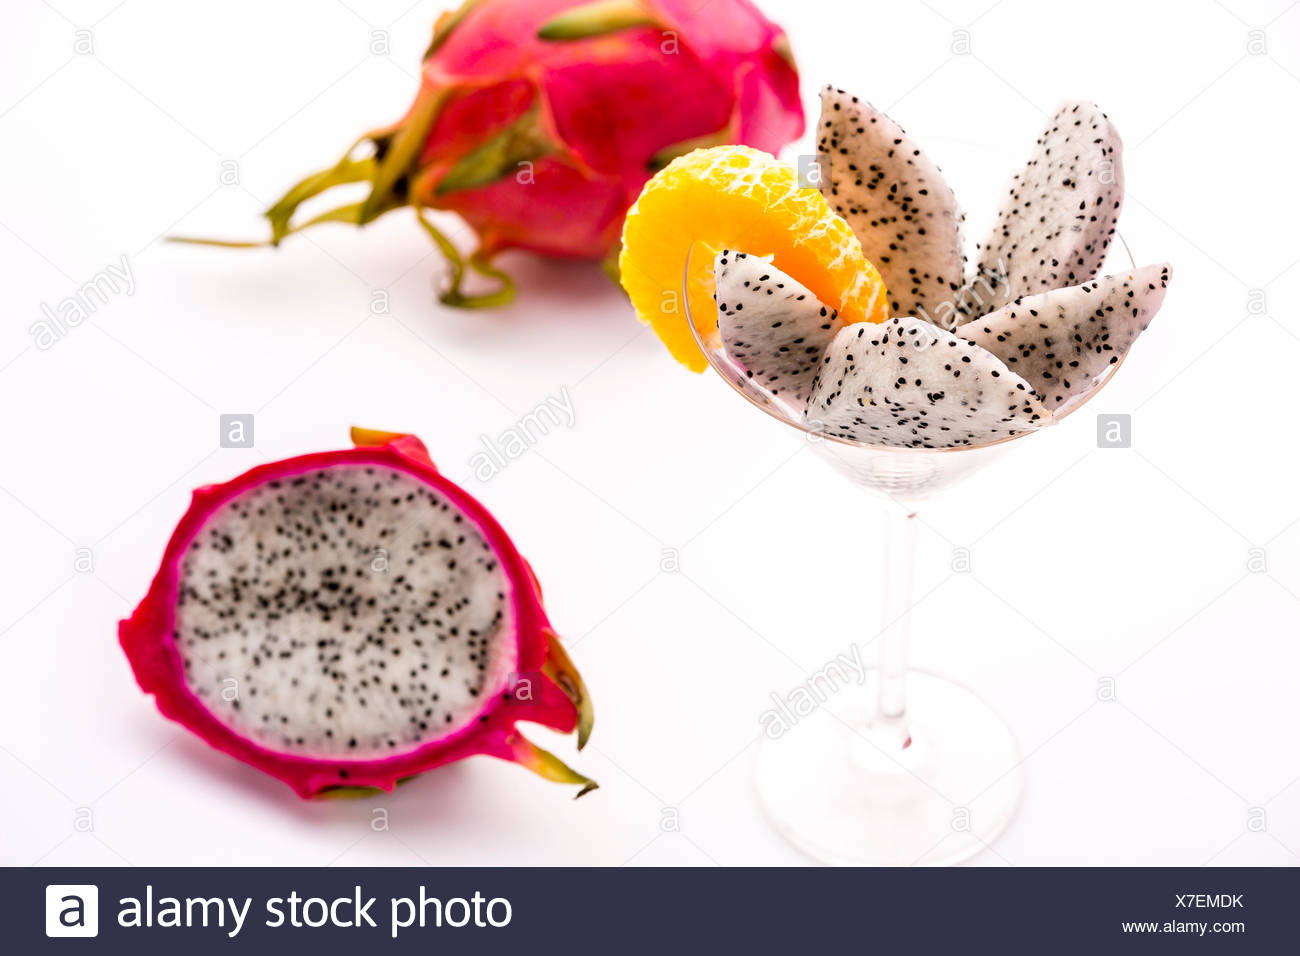 White pulp of half a pitaya cut into wedges and presented in a glass. The decorative mandarine slice is also complementing the pitaya's flavor. - Stock Image